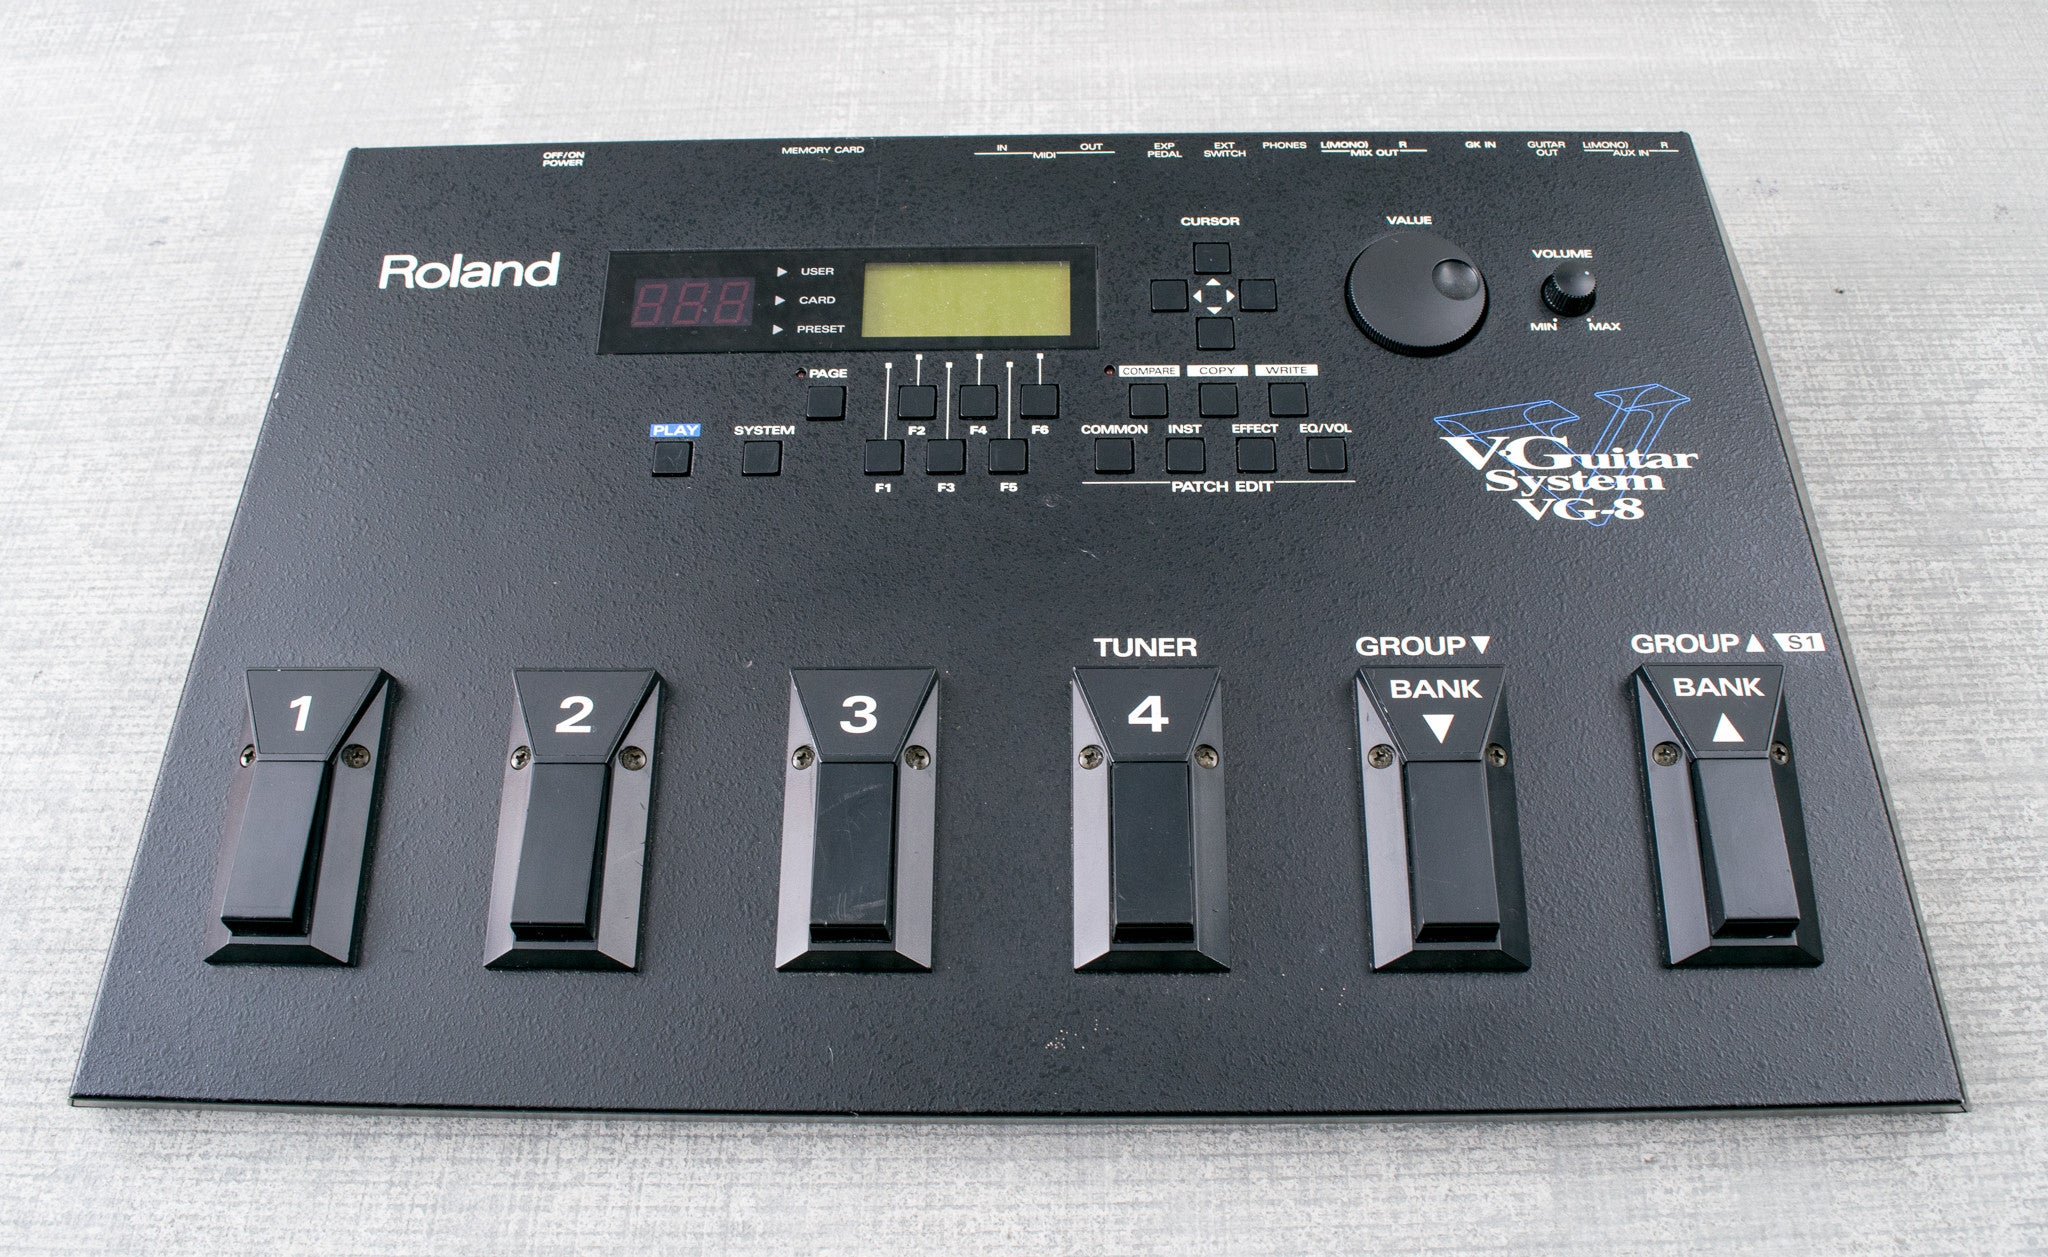 Best Seller Page 3 Martel Music Store 5 Channels 2 Octave Graphic Equaliser By 4558 Used Roland Vg 8 Guitar Processor